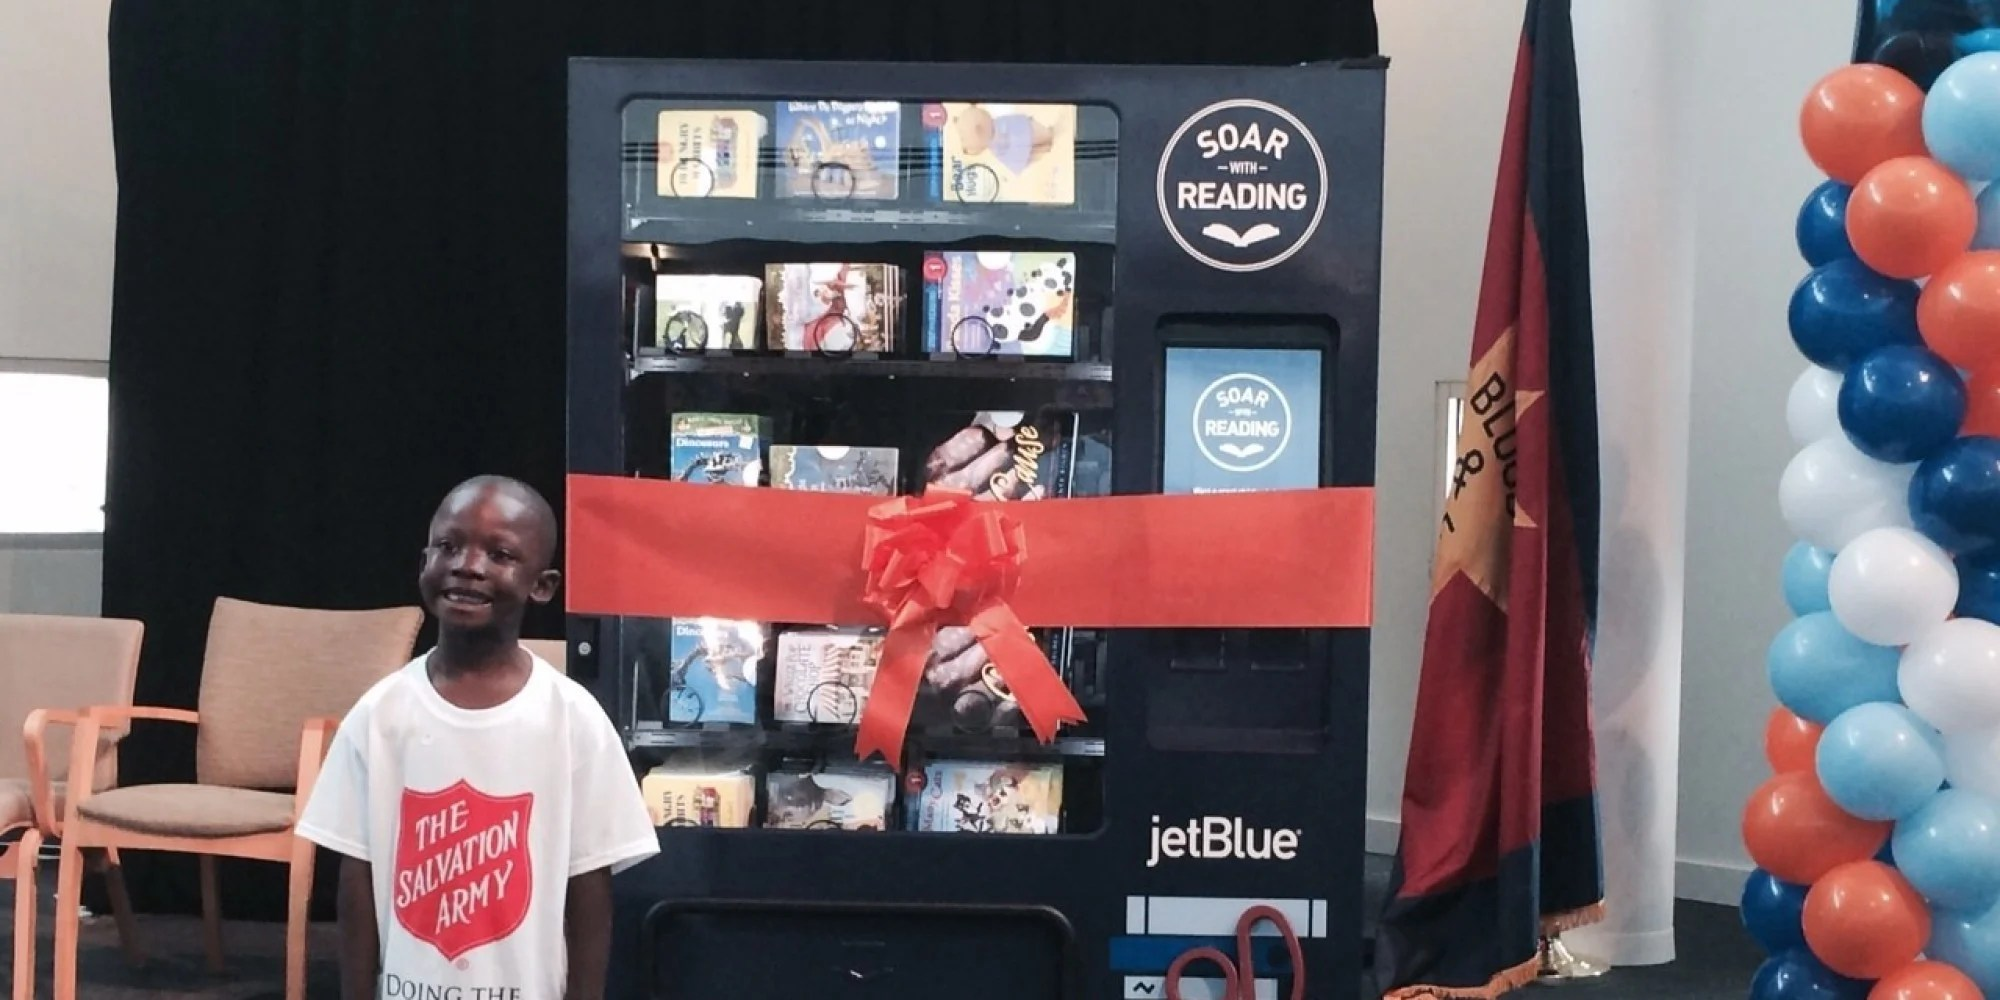 Jet Blue S Vending Machines Will Be Welcomed At Any School Kids News Article